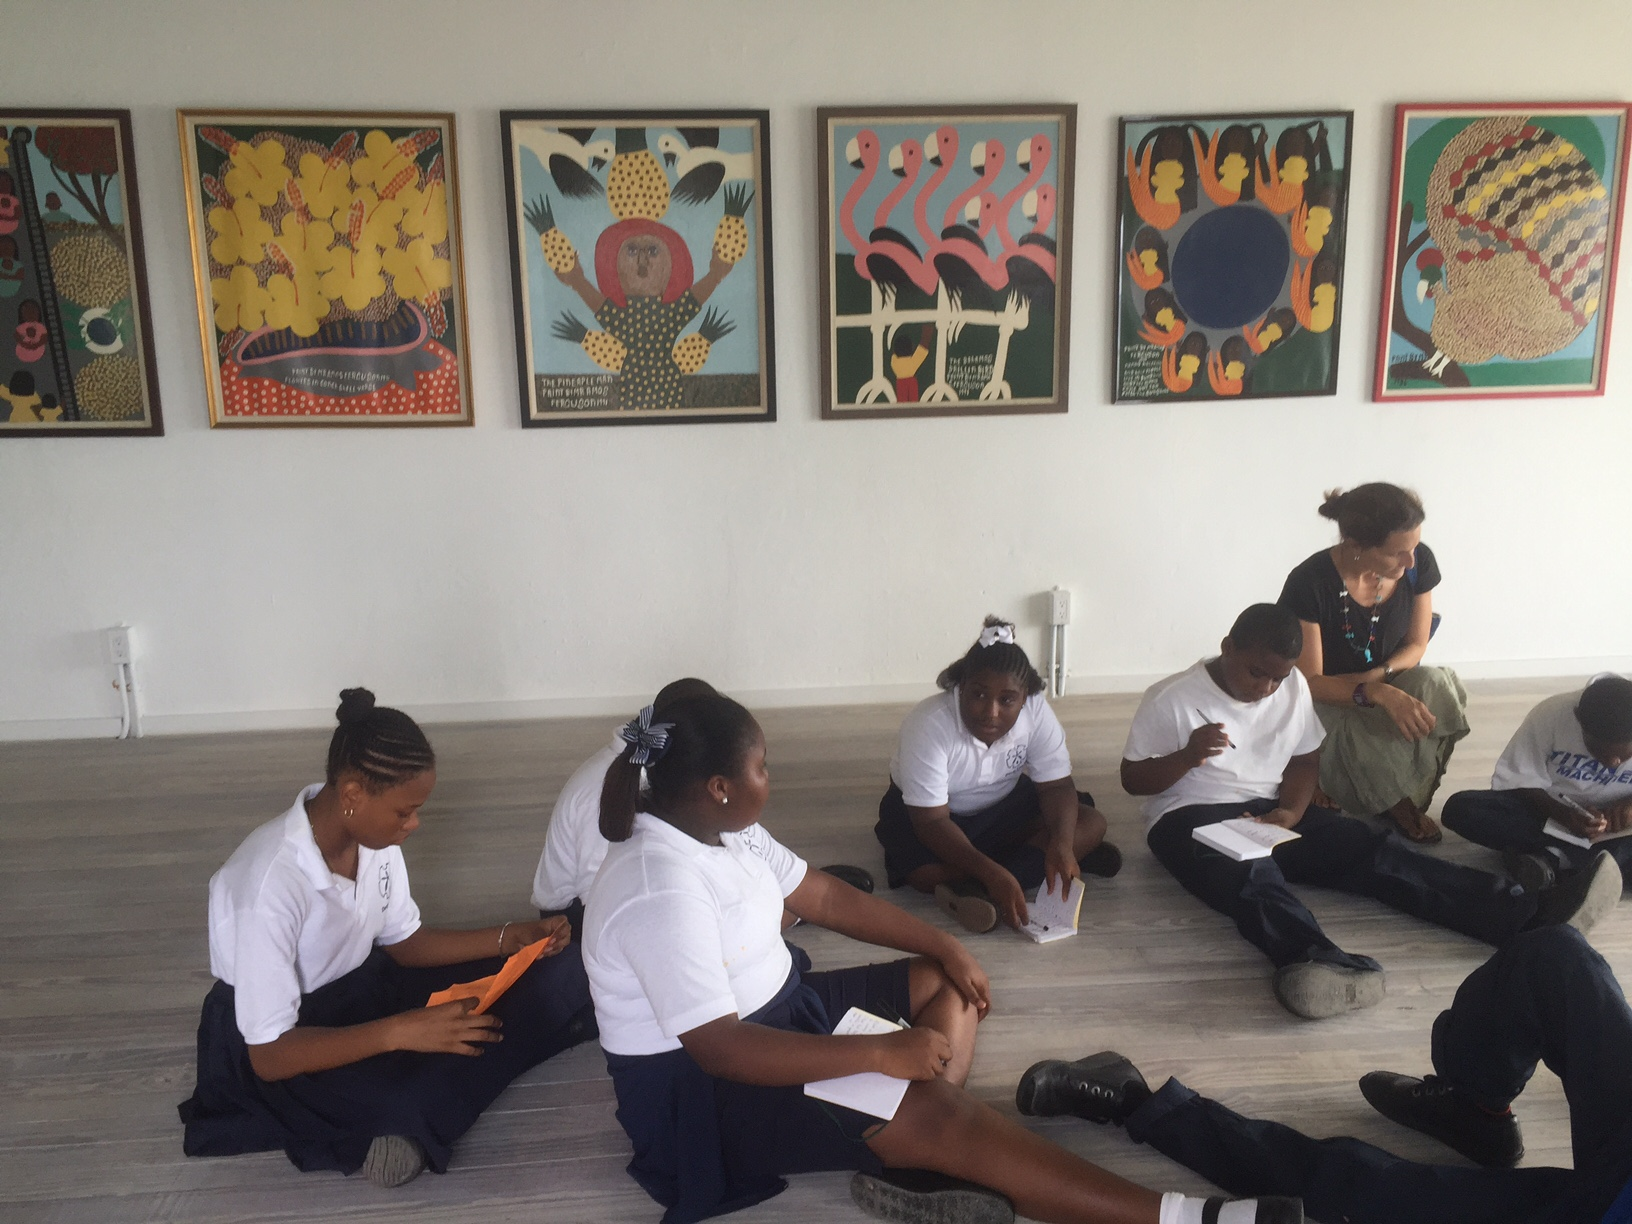 Students in Governor's Harbour reflecting on the artwork by Amos Ferguson.